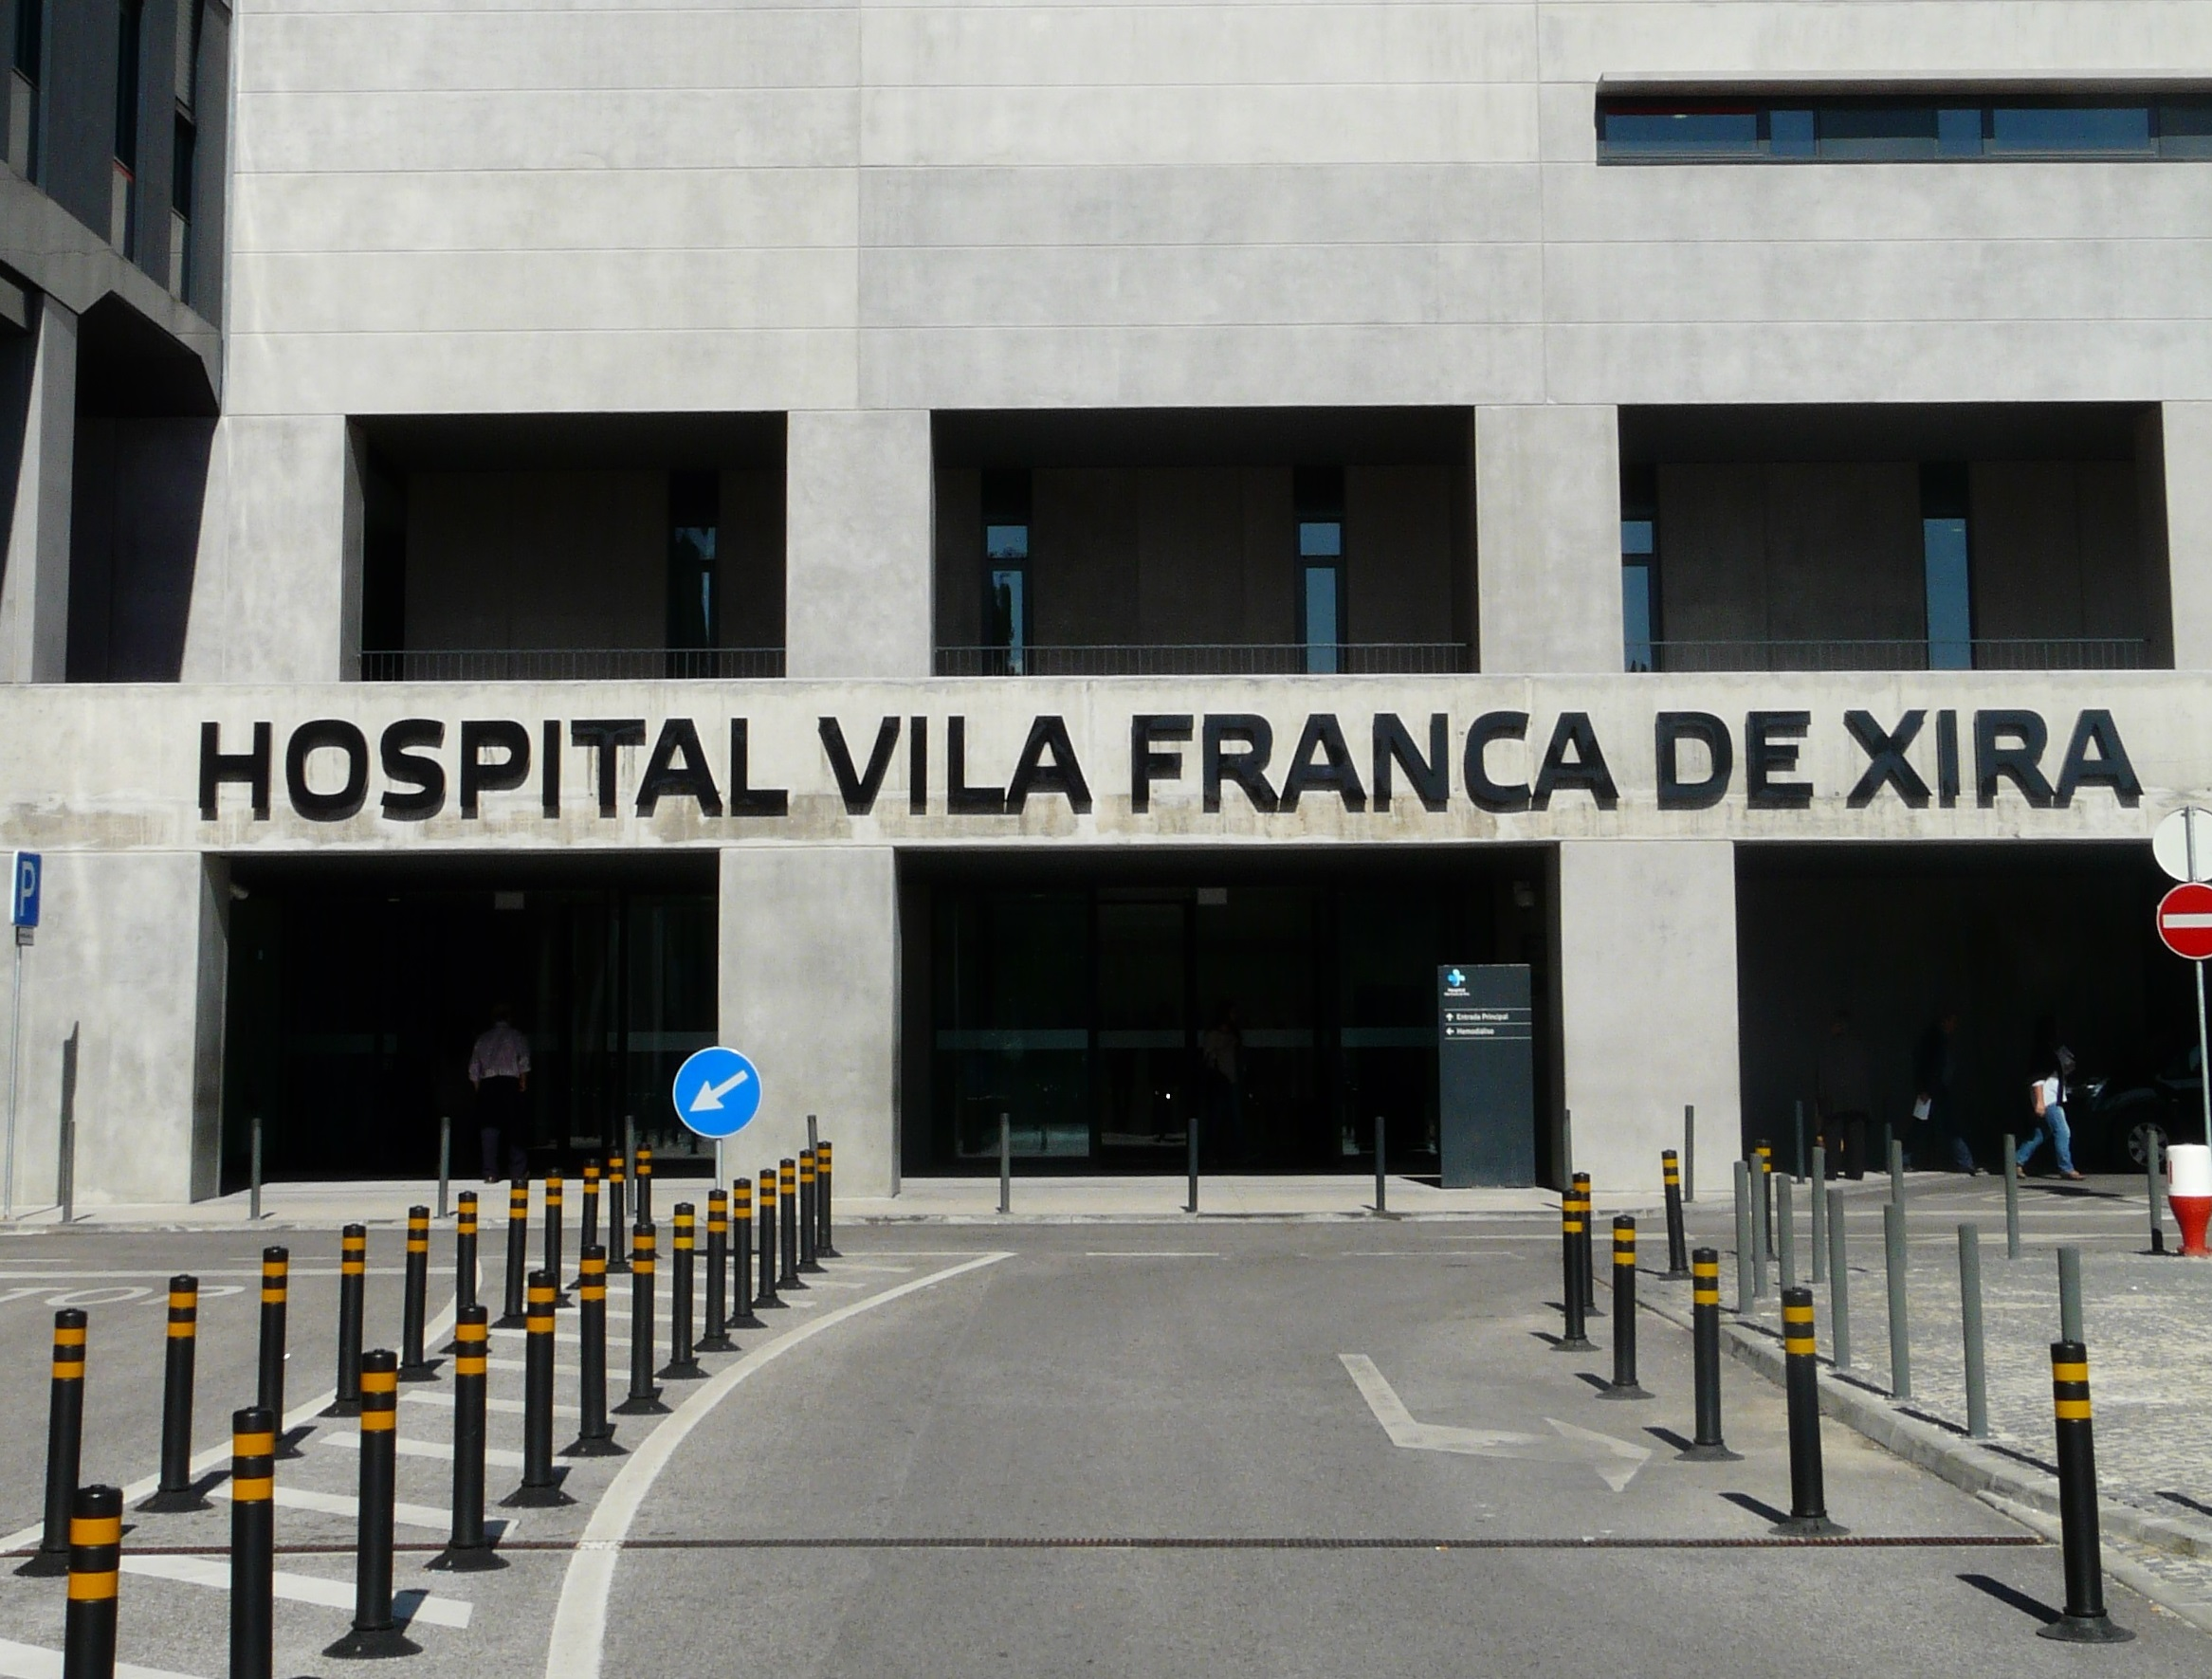 hospital-de-vila-franca-de-xira-HVFX é hospital público mais bem classificado